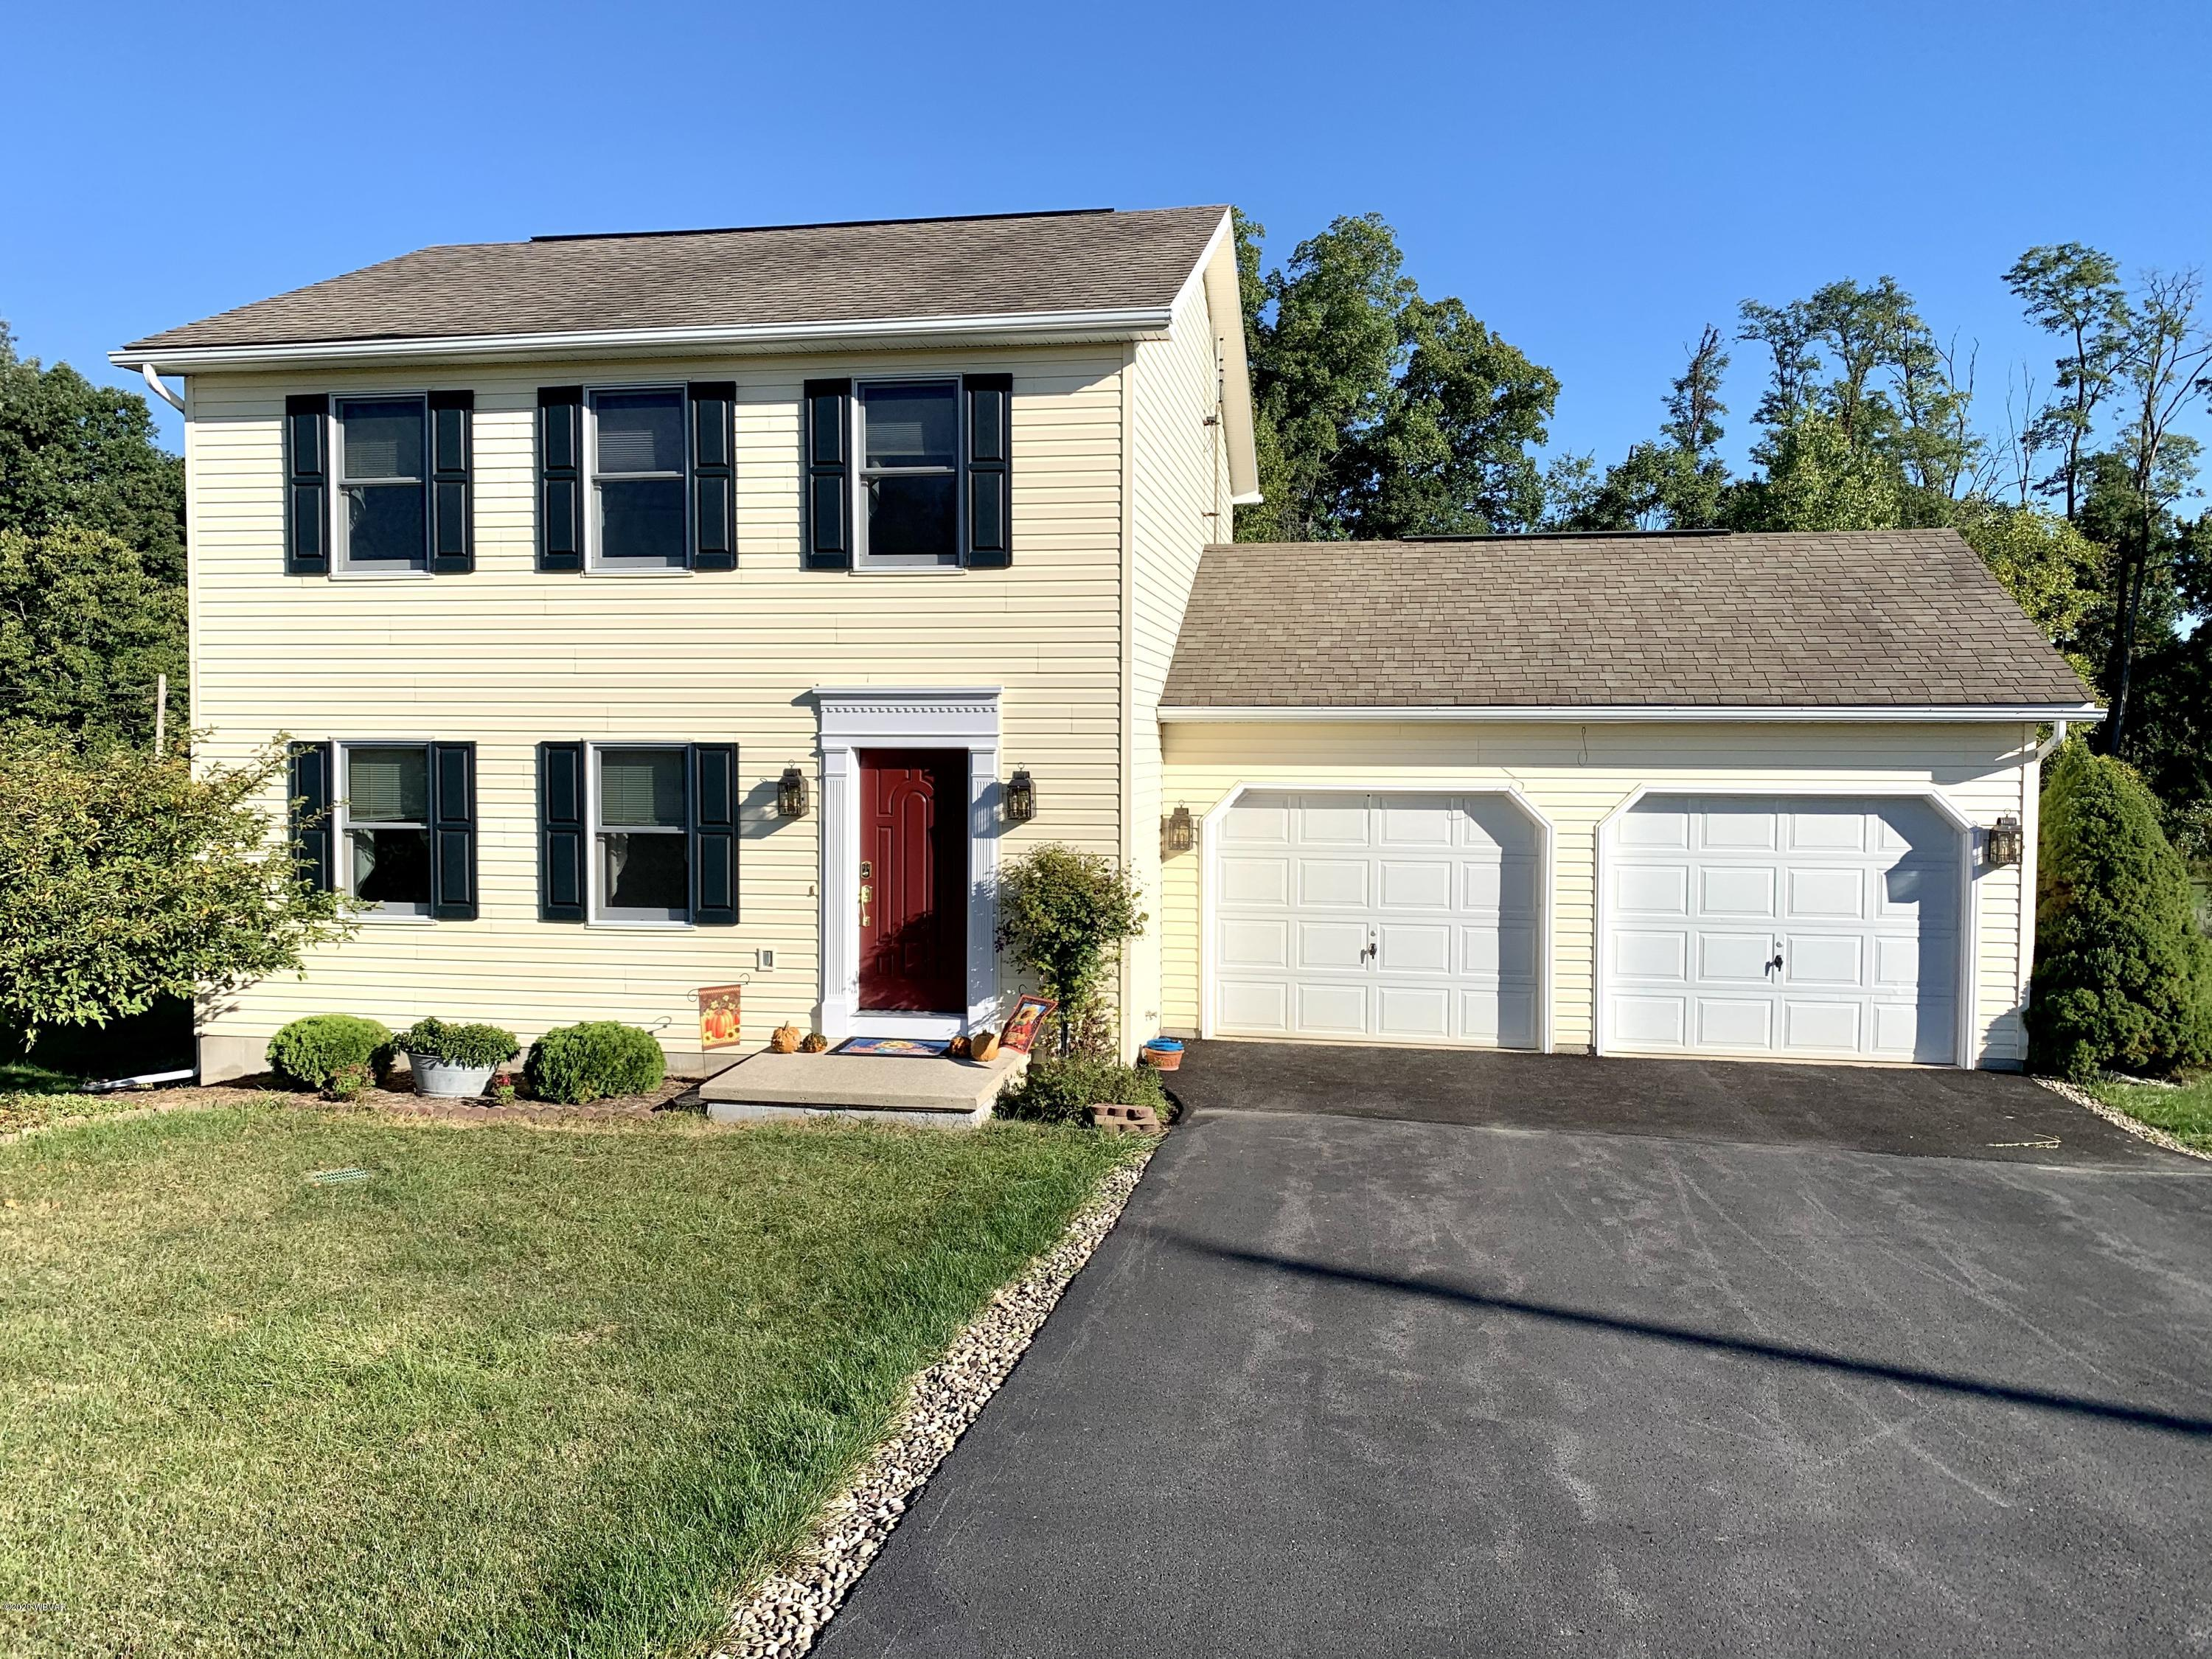 2076 NUMBER 10 ROAD, New Columbia, PA 17856, 3 Bedrooms Bedrooms, ,1.5 BathroomsBathrooms,Residential,For sale,NUMBER 10,WB-91560